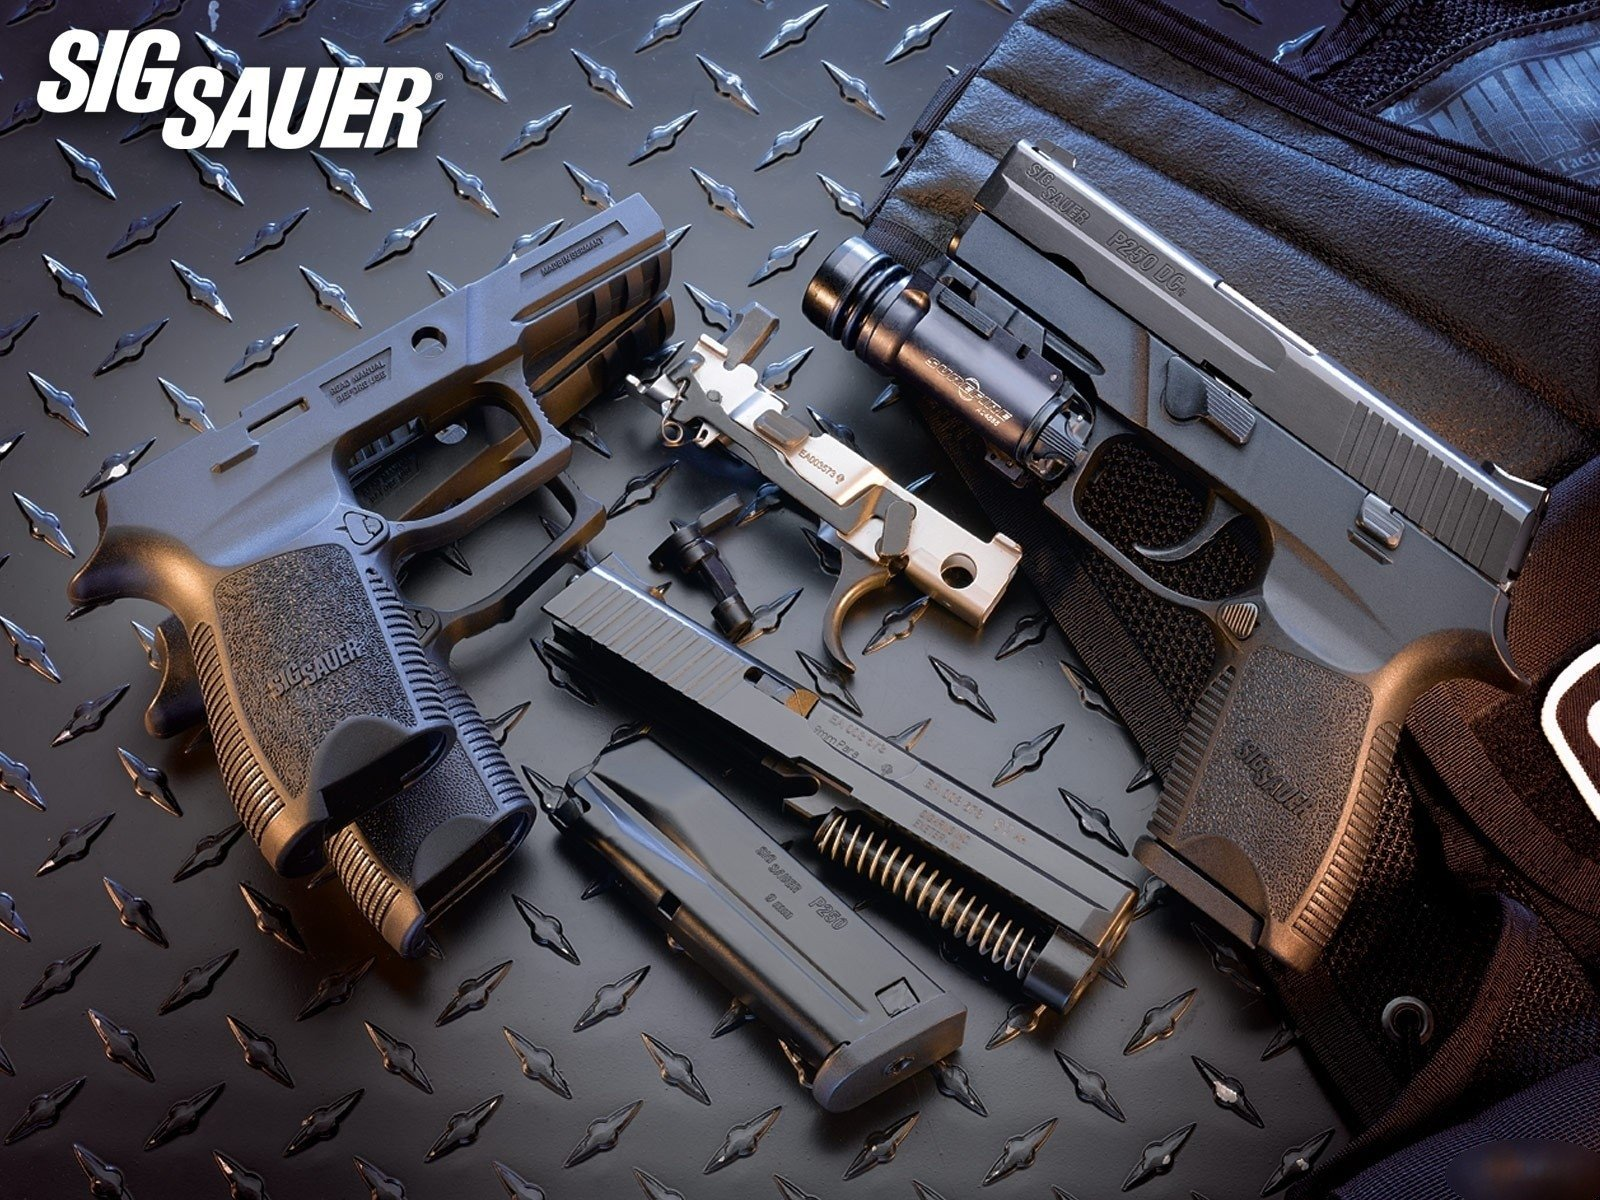 Sig Sauer Pistol Wallpapers and Background Images   stmednet 1600x1200